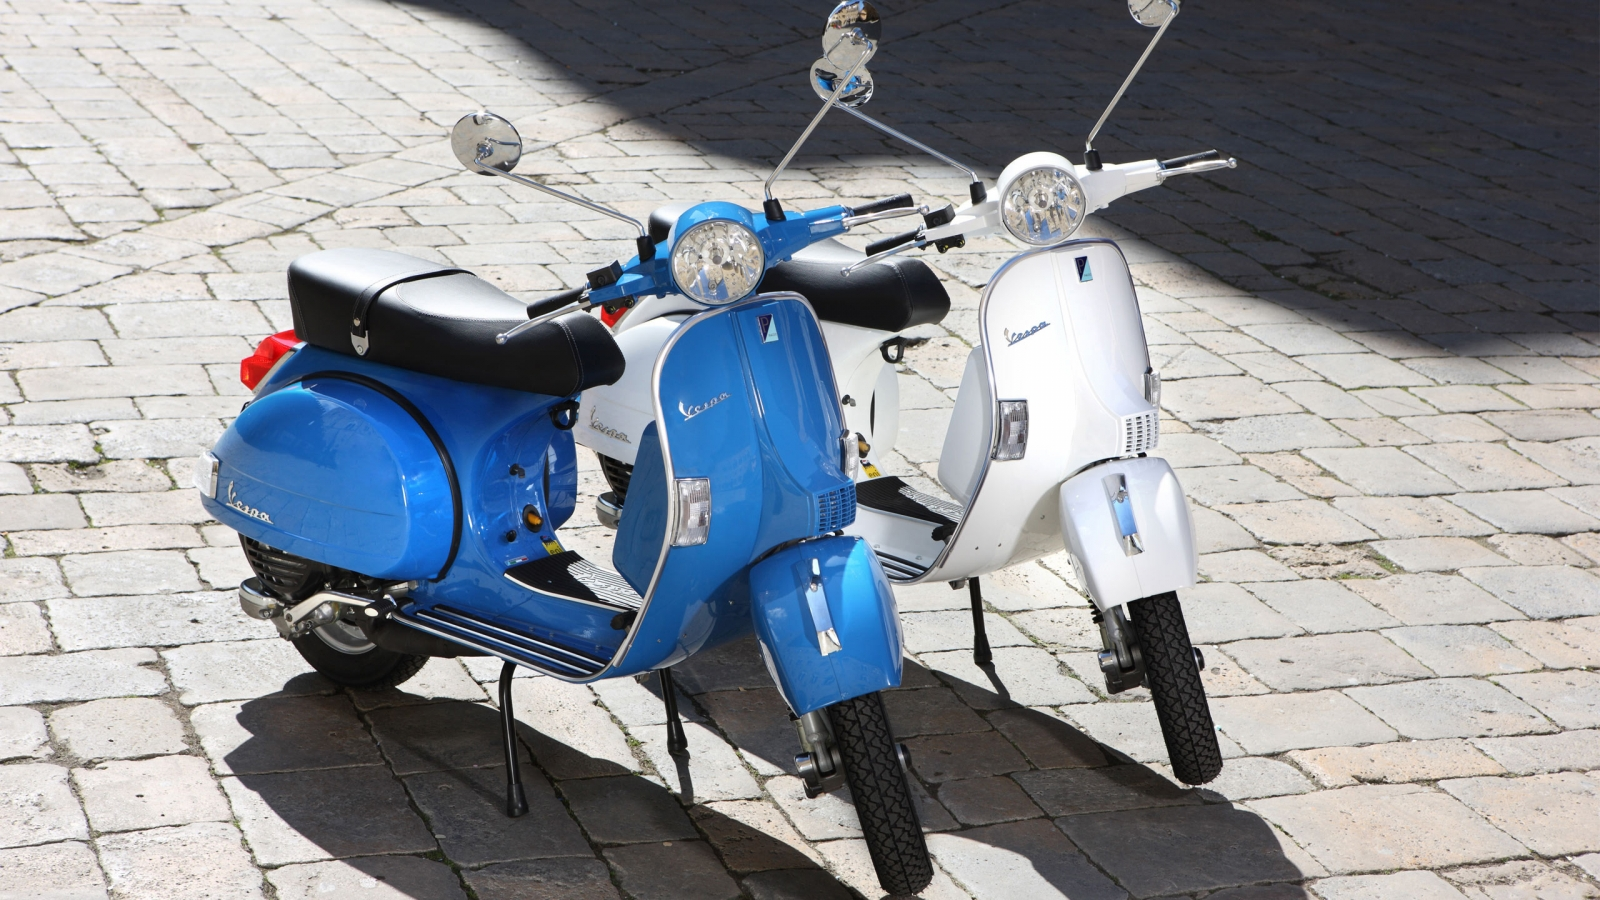 Vespa PX 150A 2011 for 1600 x 900 HDTV resolution